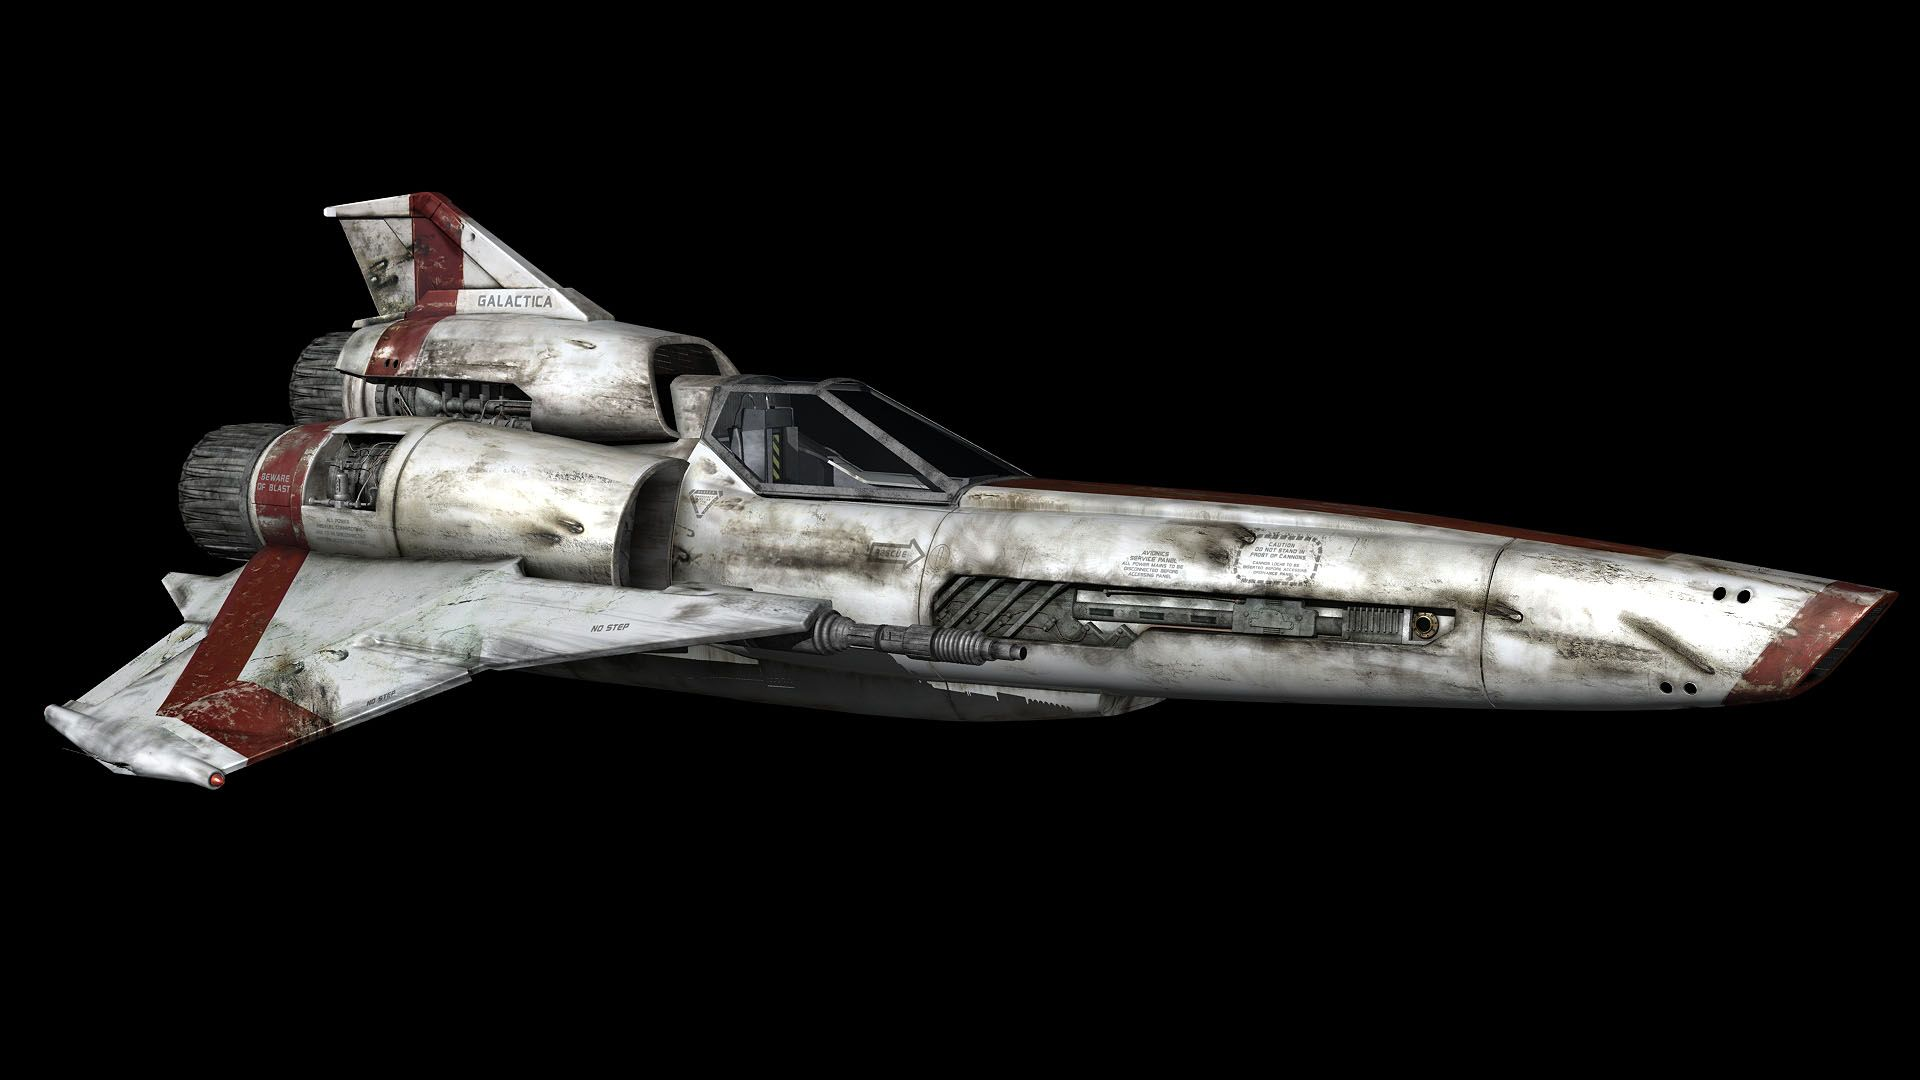 We Are Rockstars In Wallpaper World Find And Bookmark Your Favorite Wallpapers Battlestar Galactica Battlestar Galactica Ship Battlestar Galactica Model